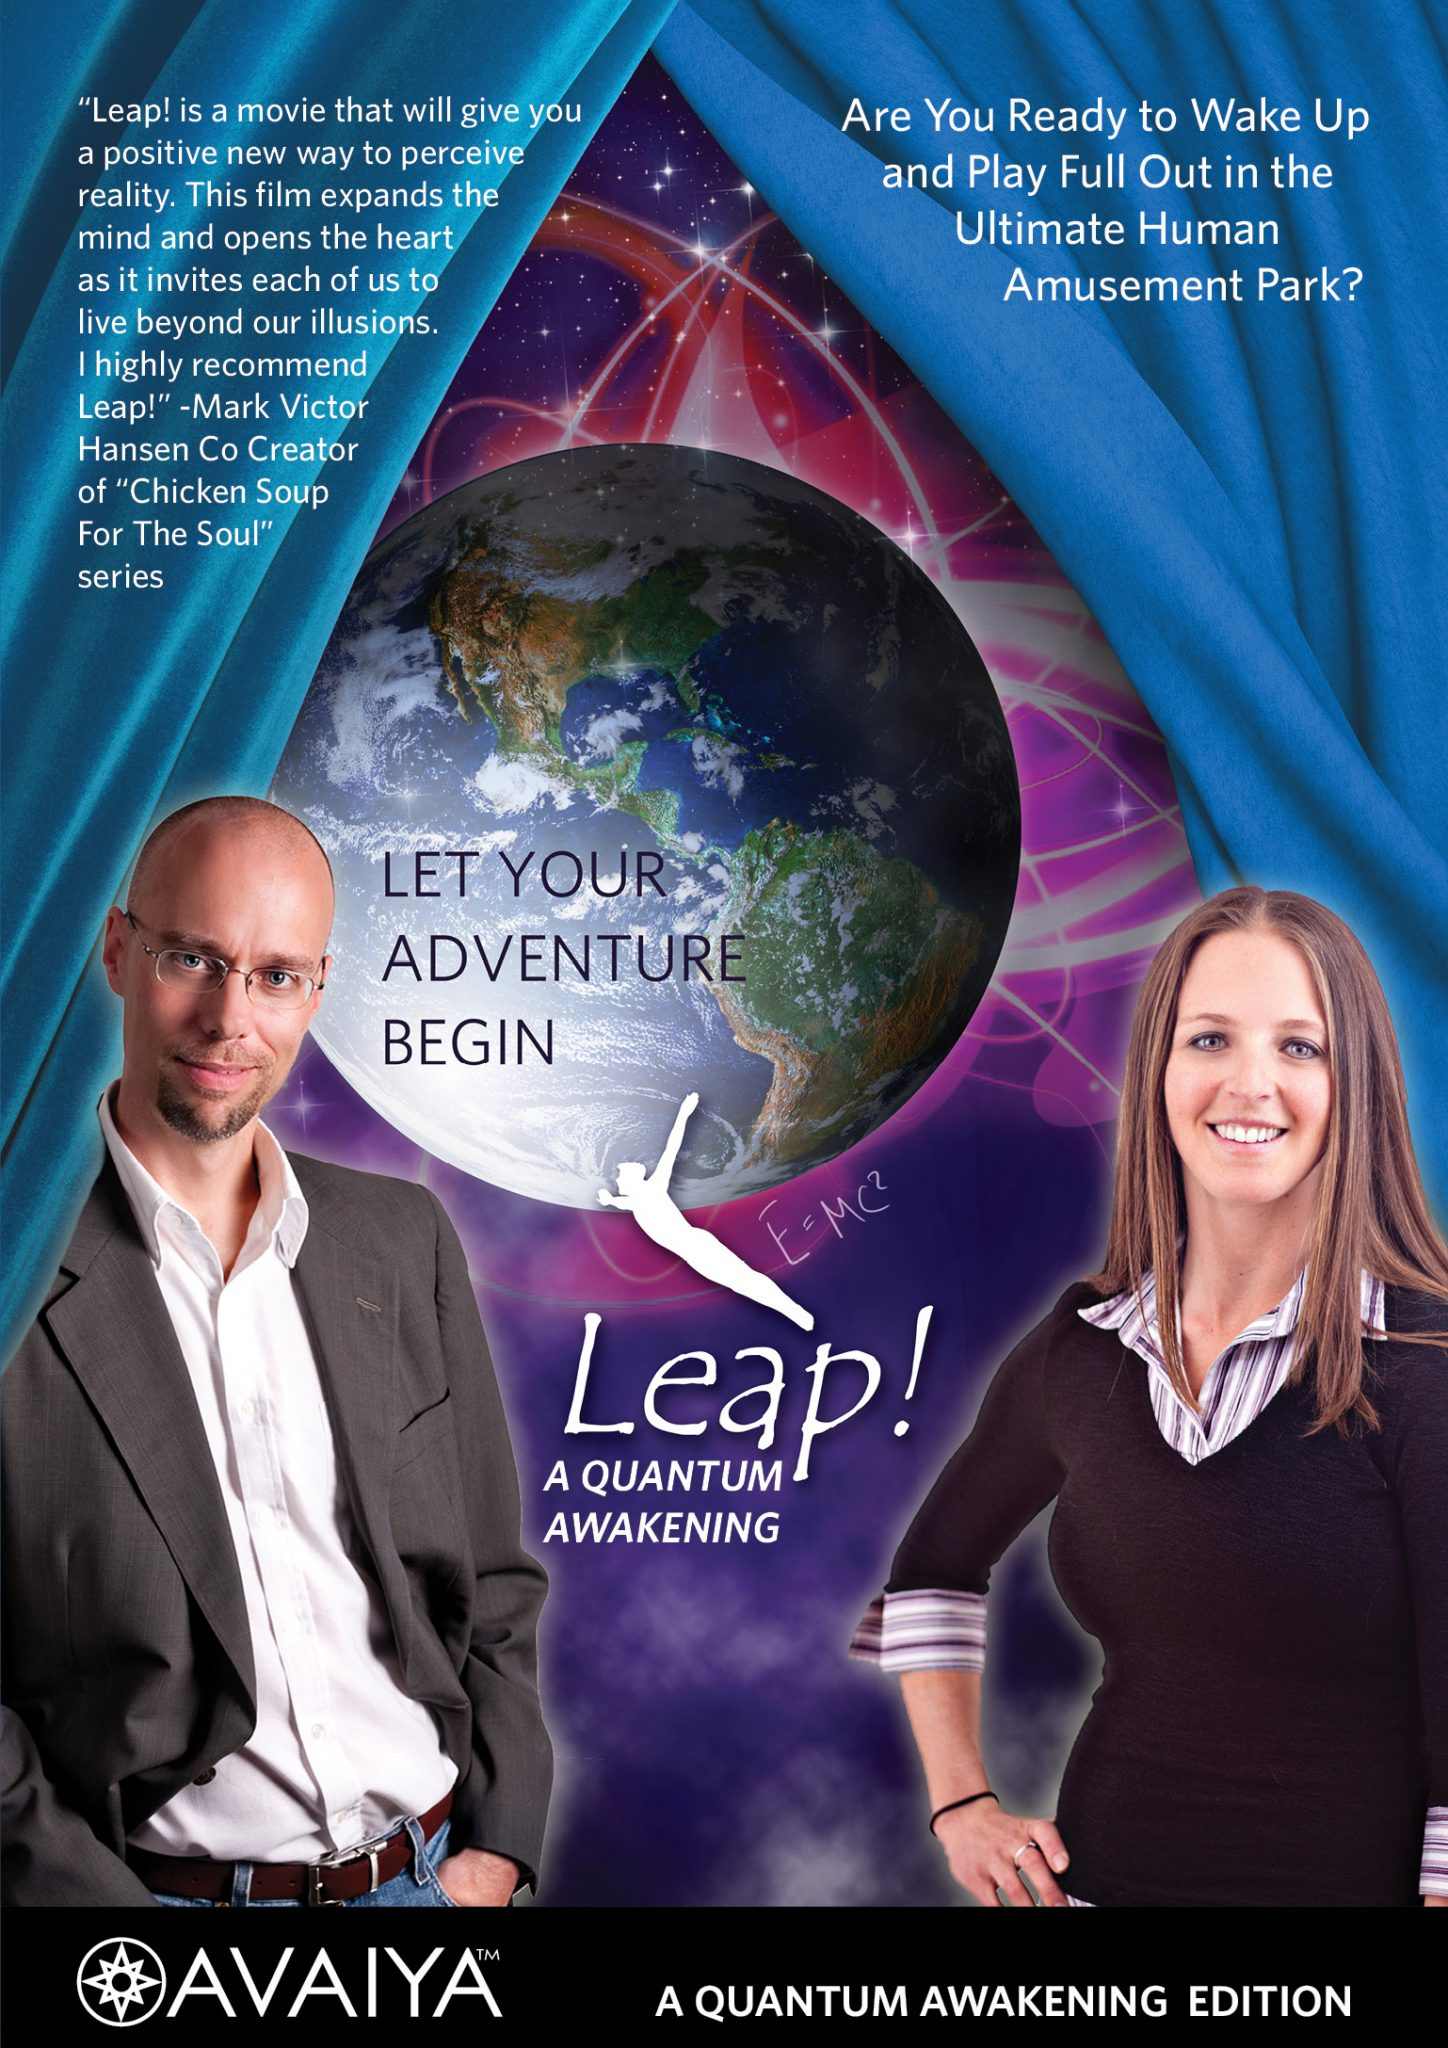 Leap! A Quantum Awakening - 48 Hour Video Rental, Streamed to your Computer (much like Netflix)